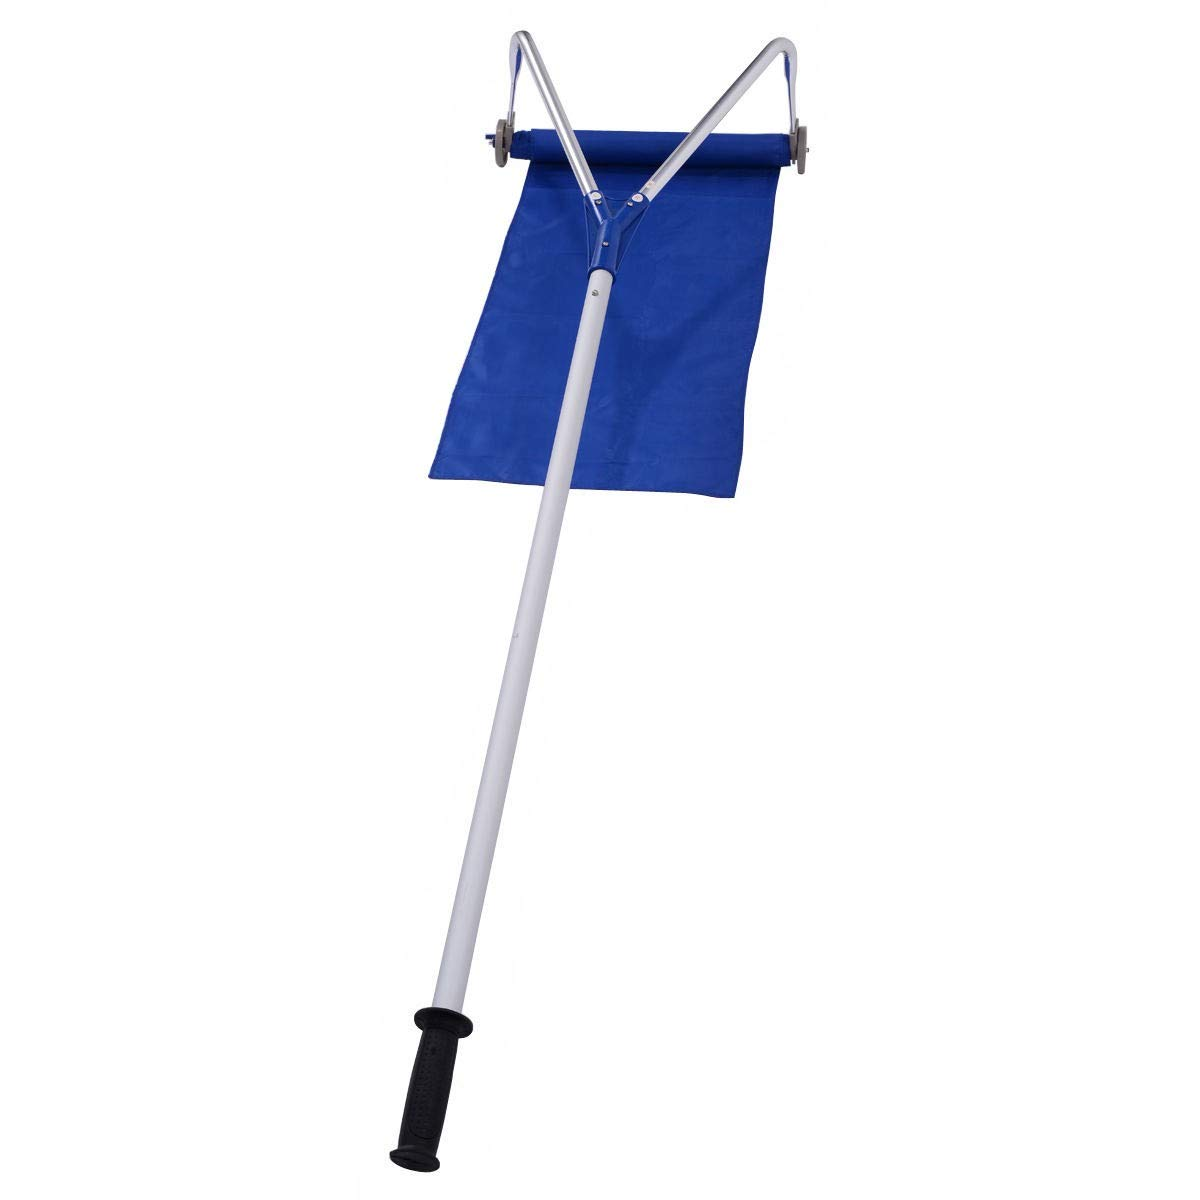 20 ft Lightweight Roof Rake Snow Removal Tool by Apontus